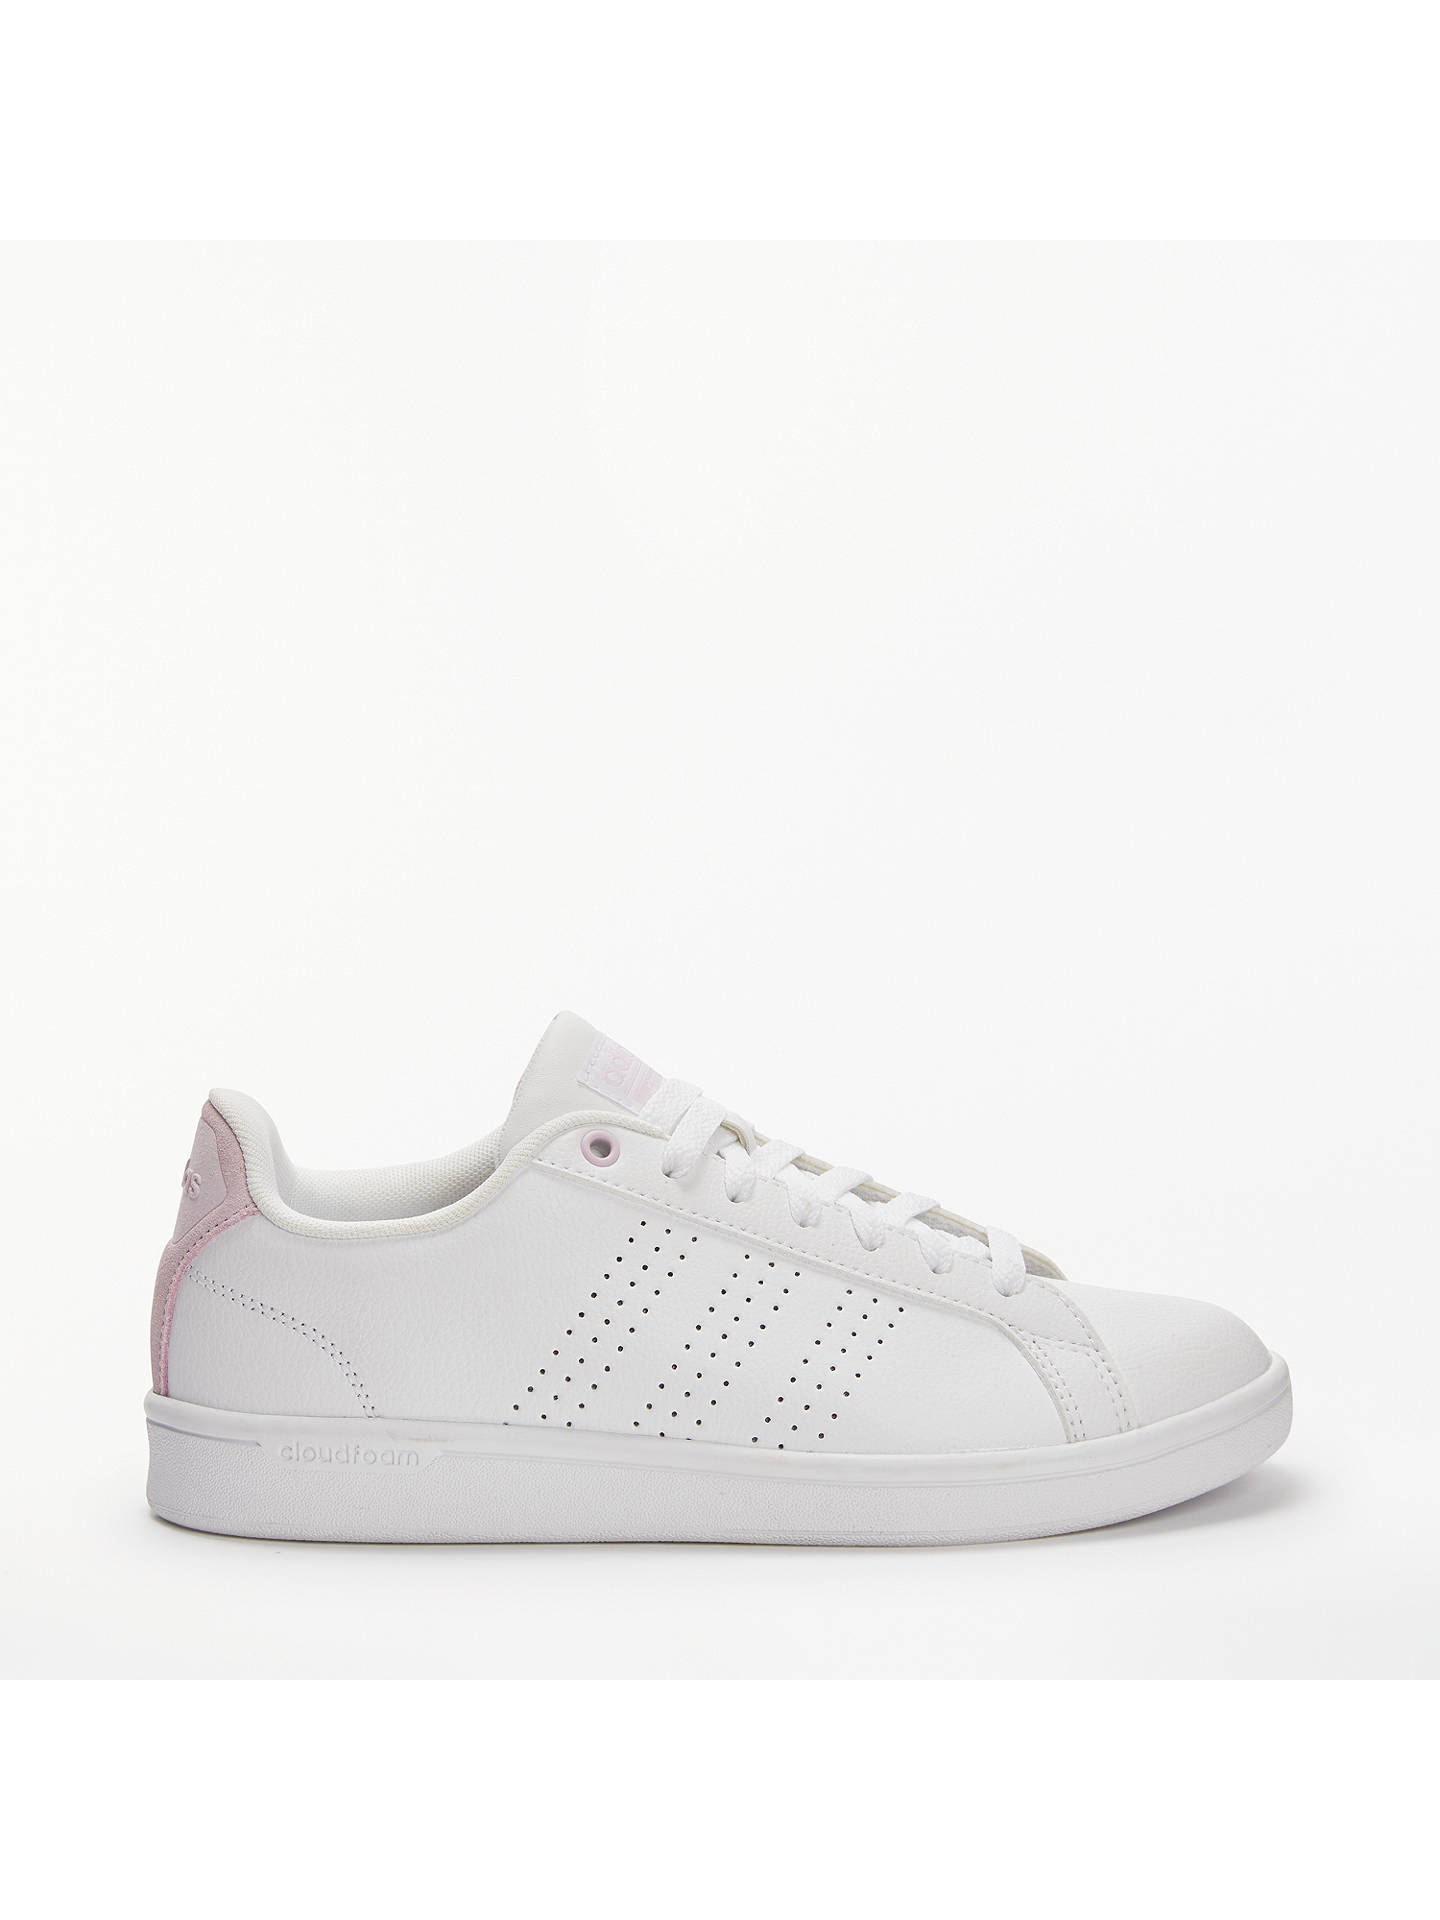 e26e068569b4 Buy adidas Neo Cloudfoam Advantage Women s Trainers